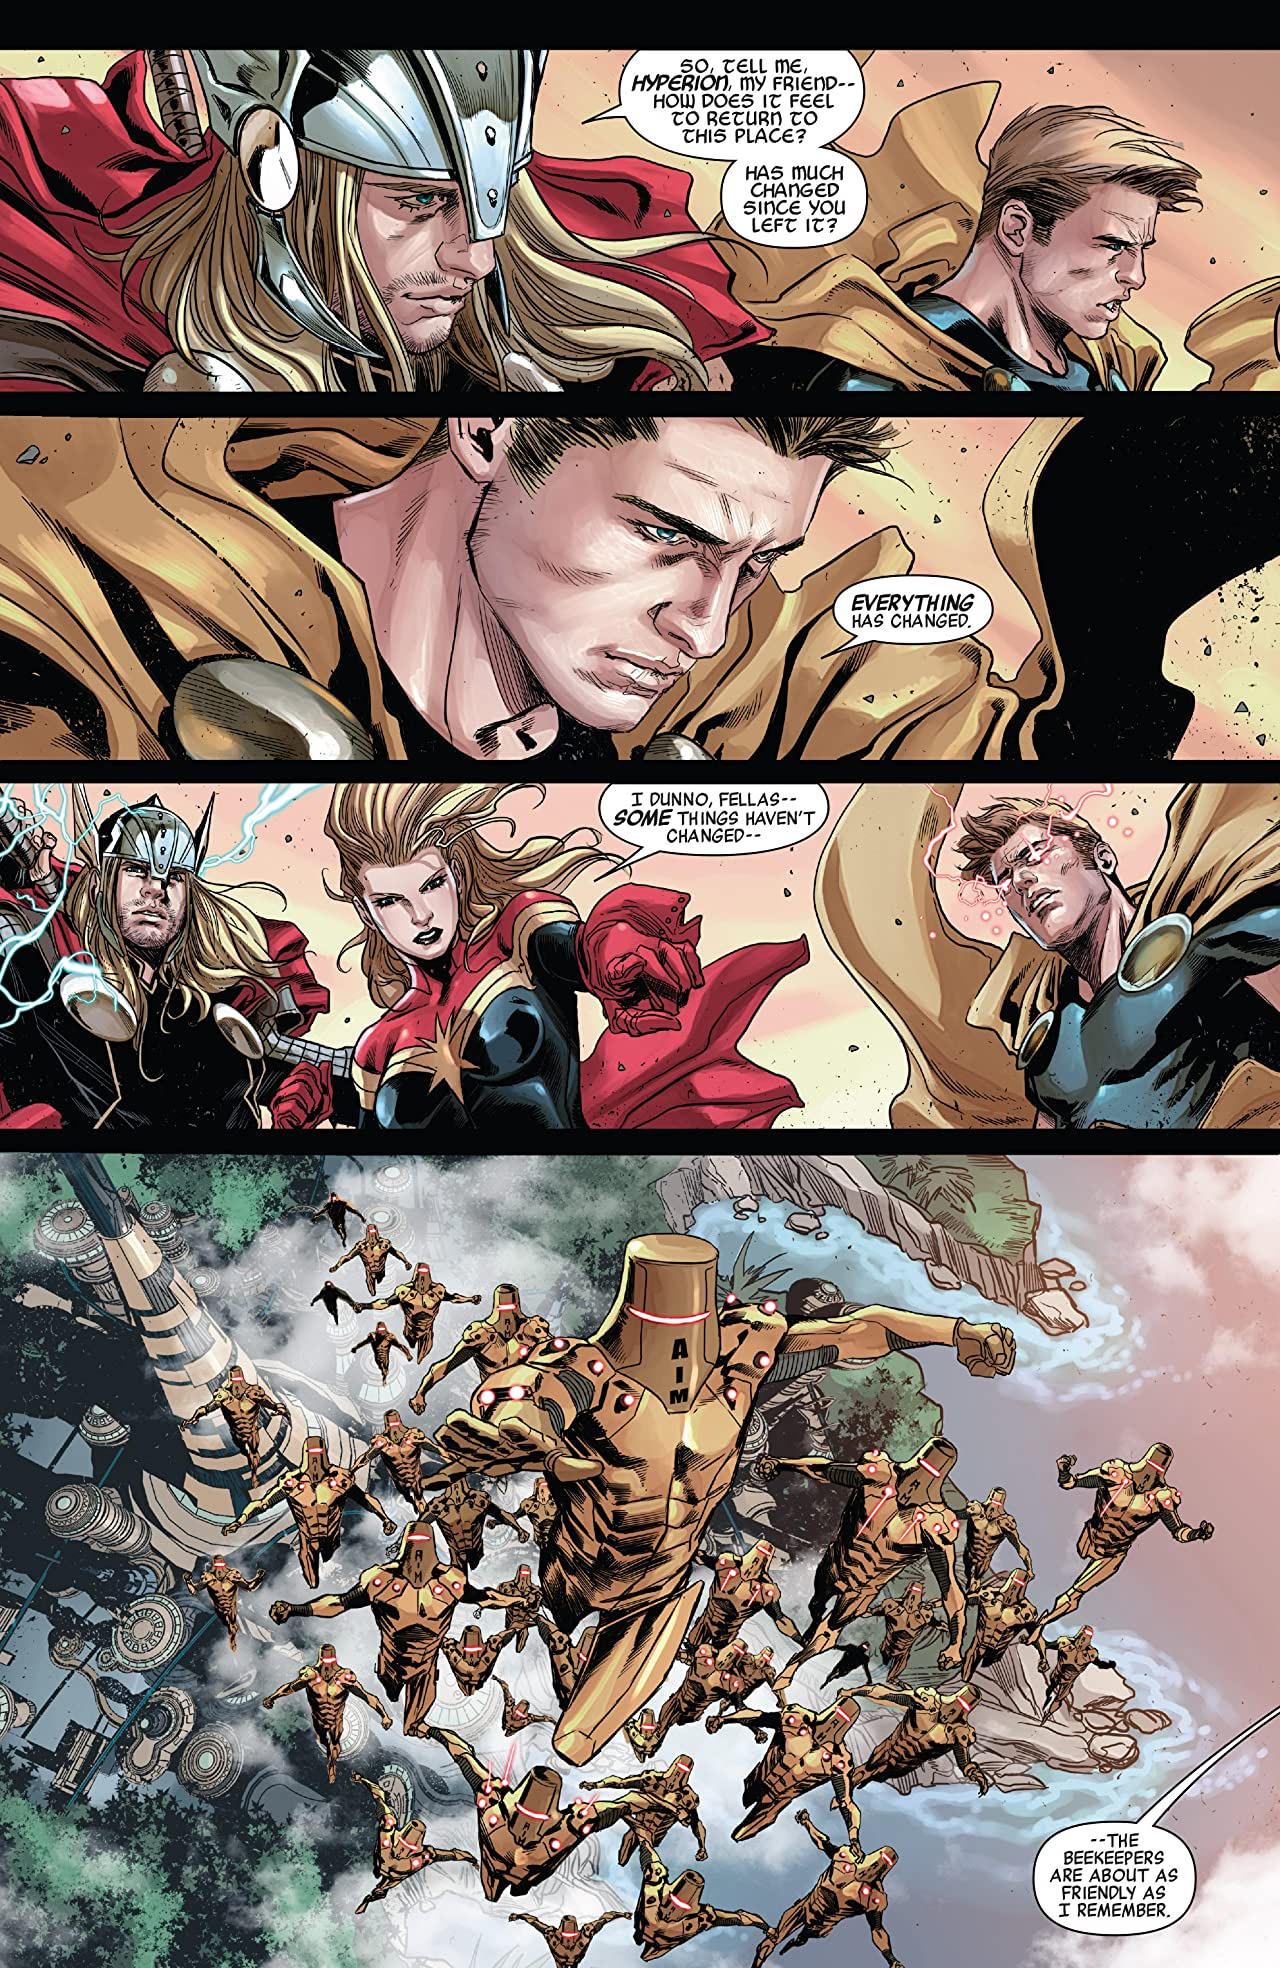 Avengers World Vol. 2: Ascension